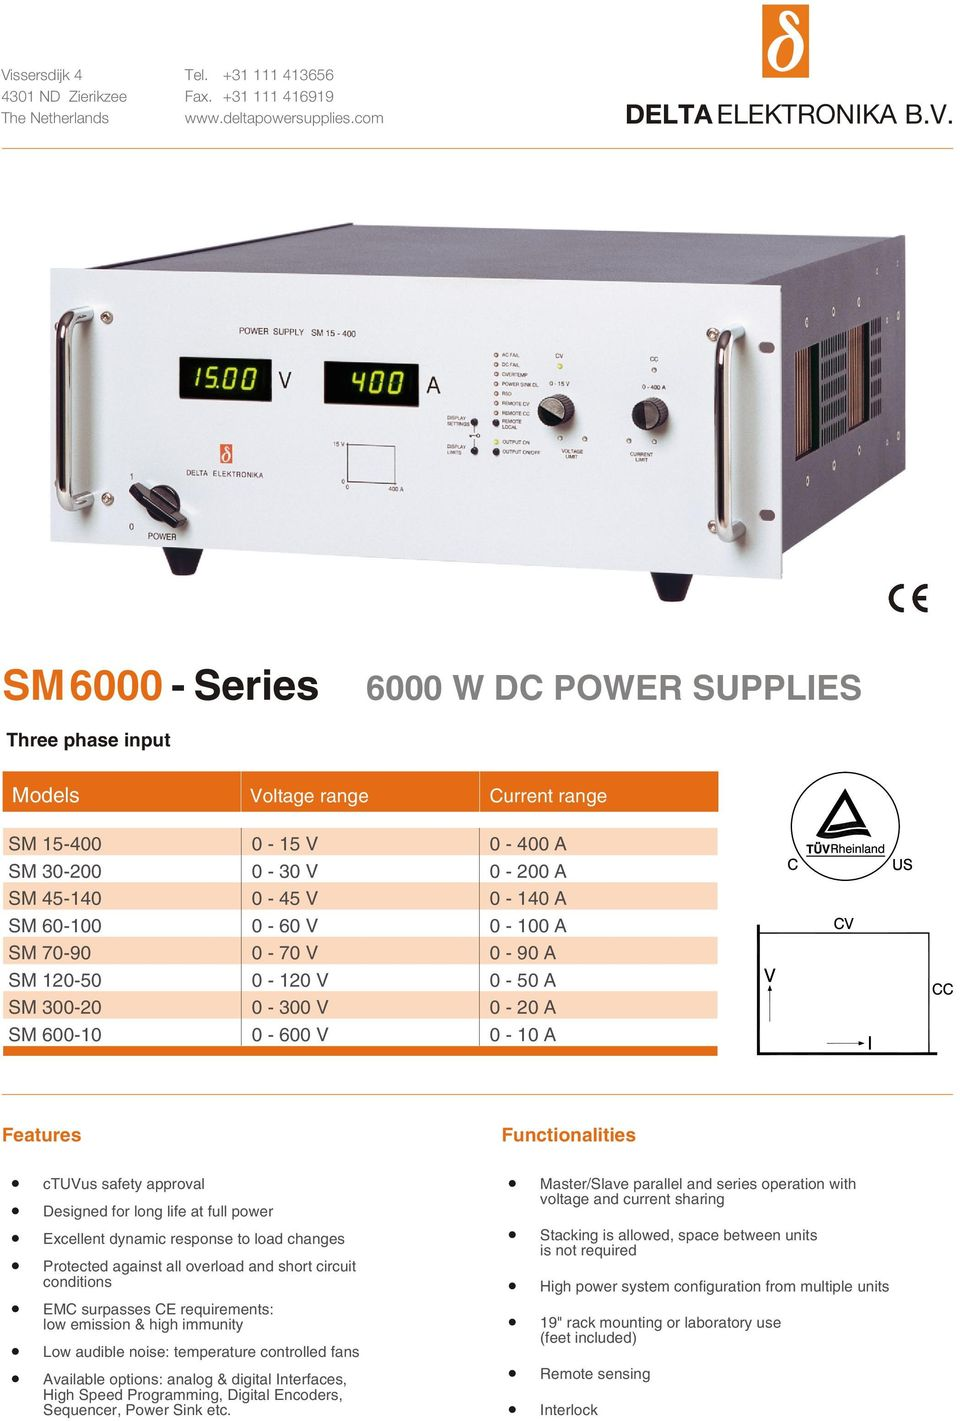 0-300 V 0-20 A SM 600-10 0-0 - Features ctuvus safety ap proval De signed for long life at full power Ex cel lent dy namic re sponse to load changes Pro tected against all over load and short cir